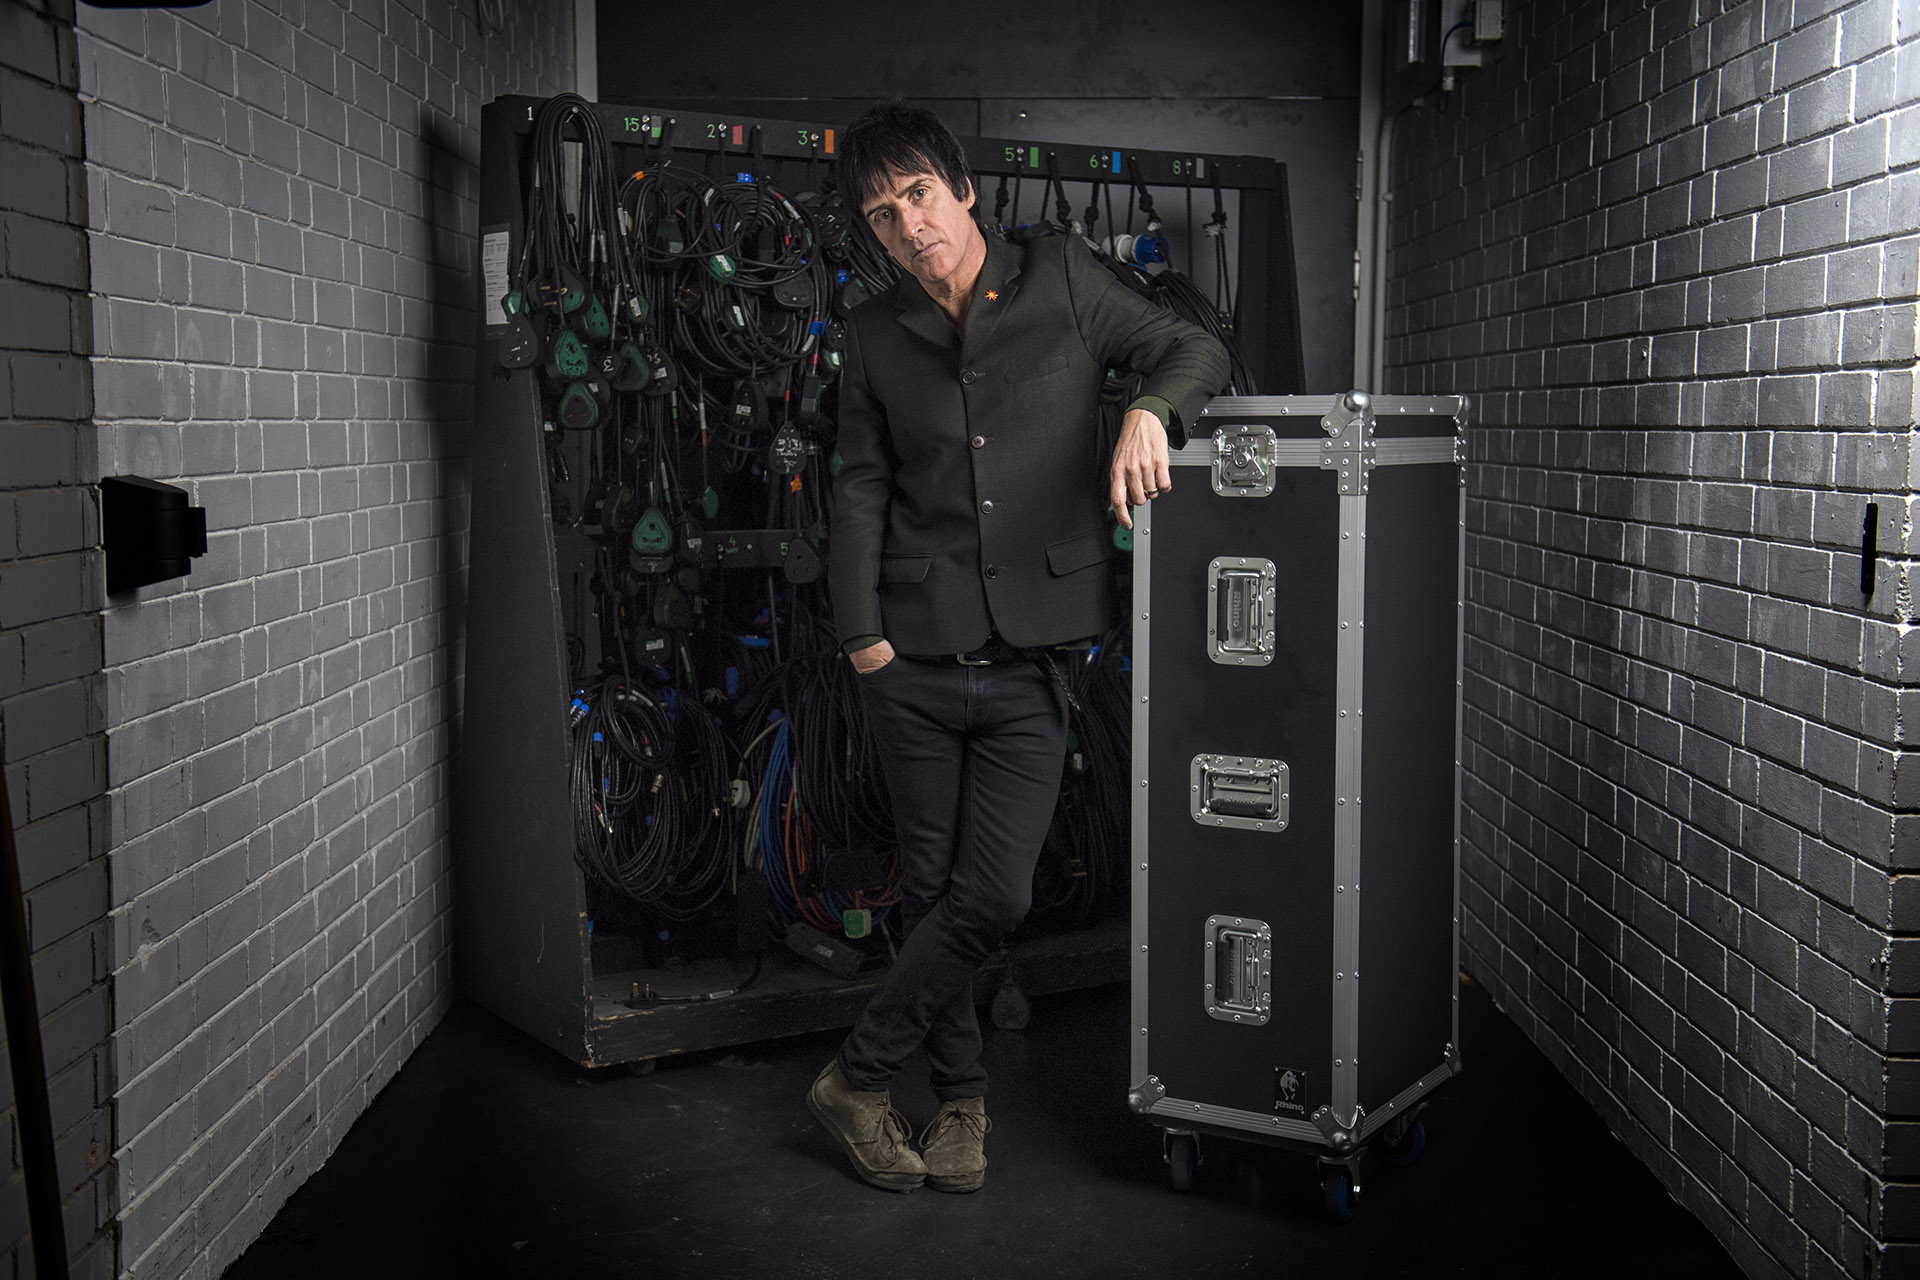 Photograph portrait of Jonny Marr at Royal Northern College of Music RNCM, Musician Photography Jon Parker Lee